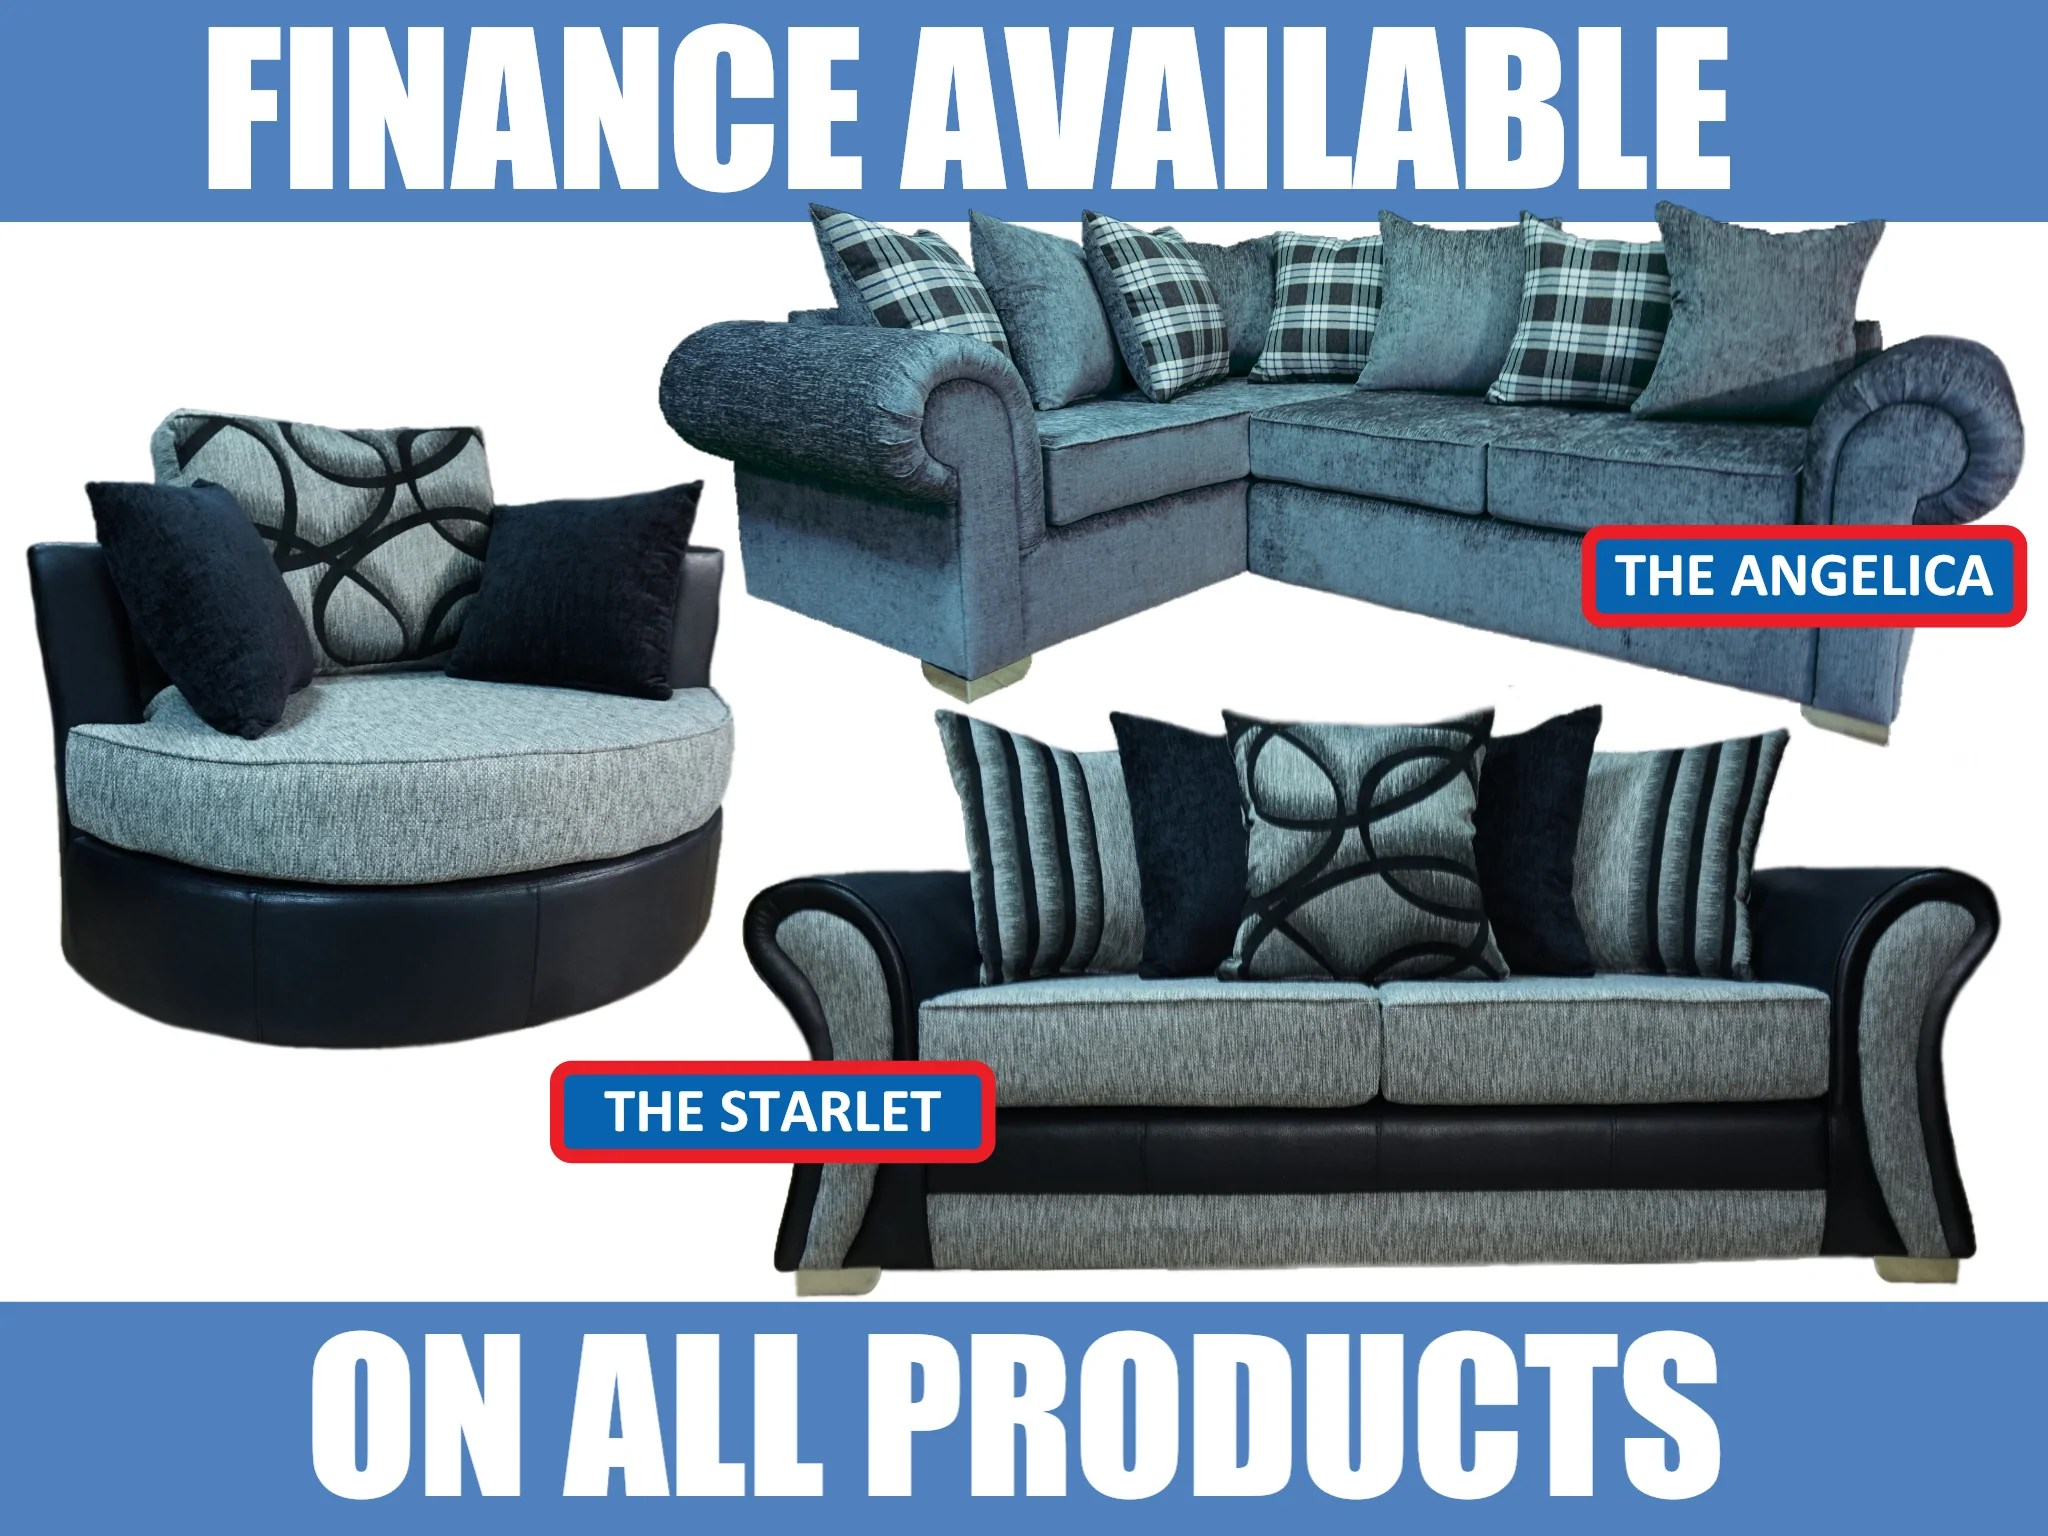 Sofa Uk Finance Sofa Finance Home Decor 88